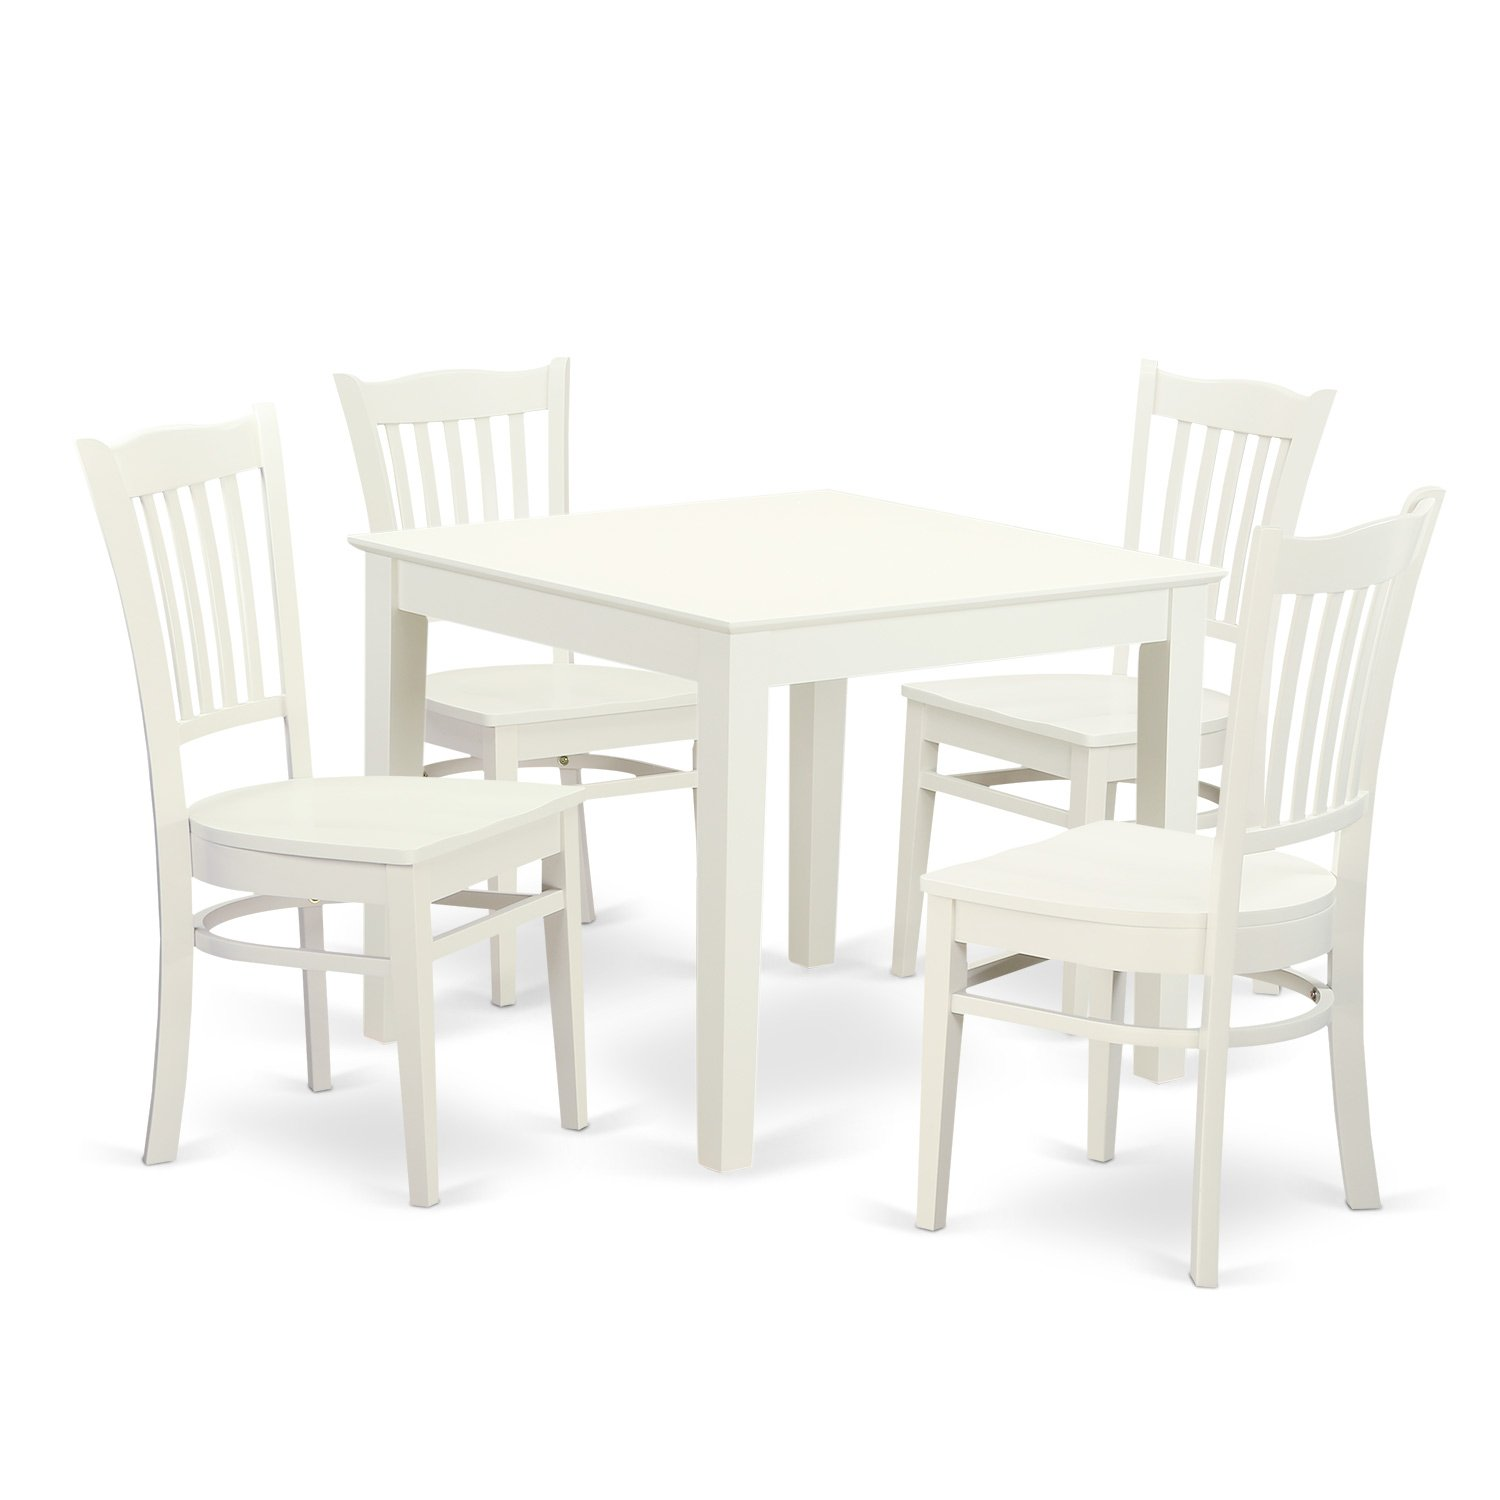 cheap kitchen dining chairs, find kitchen dining chairs deals on